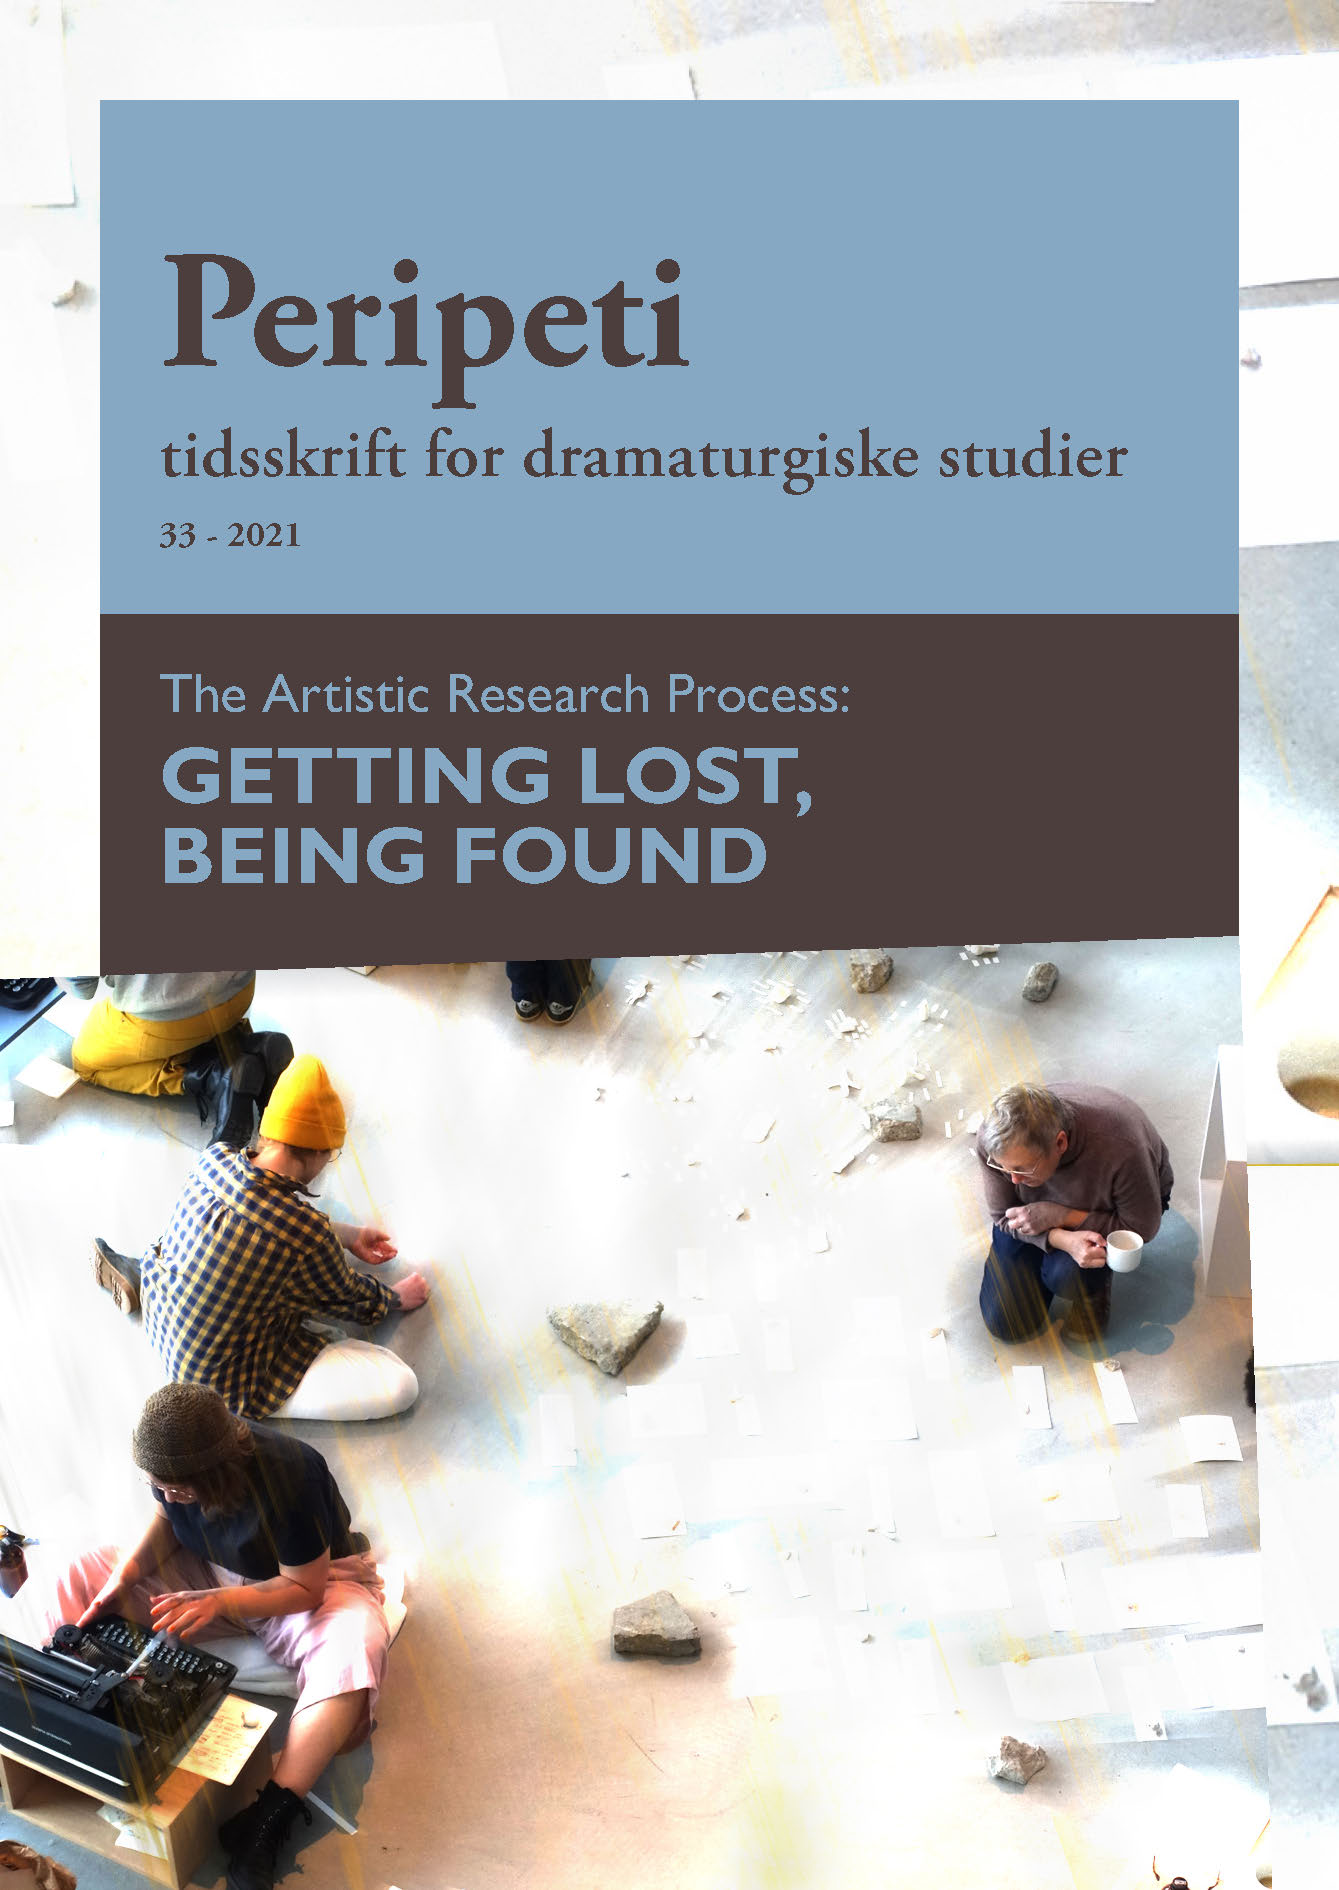 The Artistic Research Process: Getting Lost, Being Found